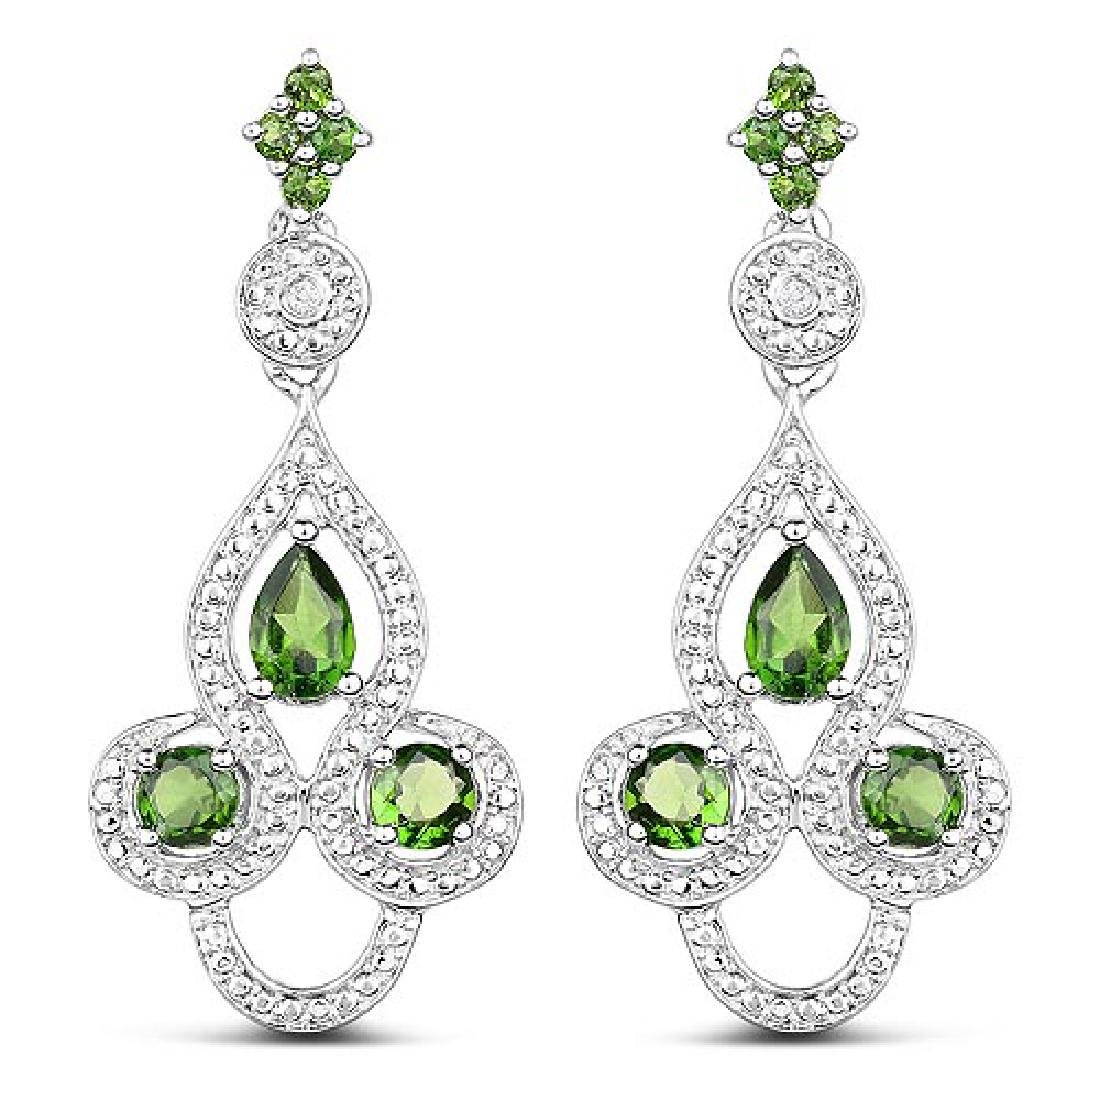 2.28 Carat Genuine Chrome Diopside and White Topaz .925